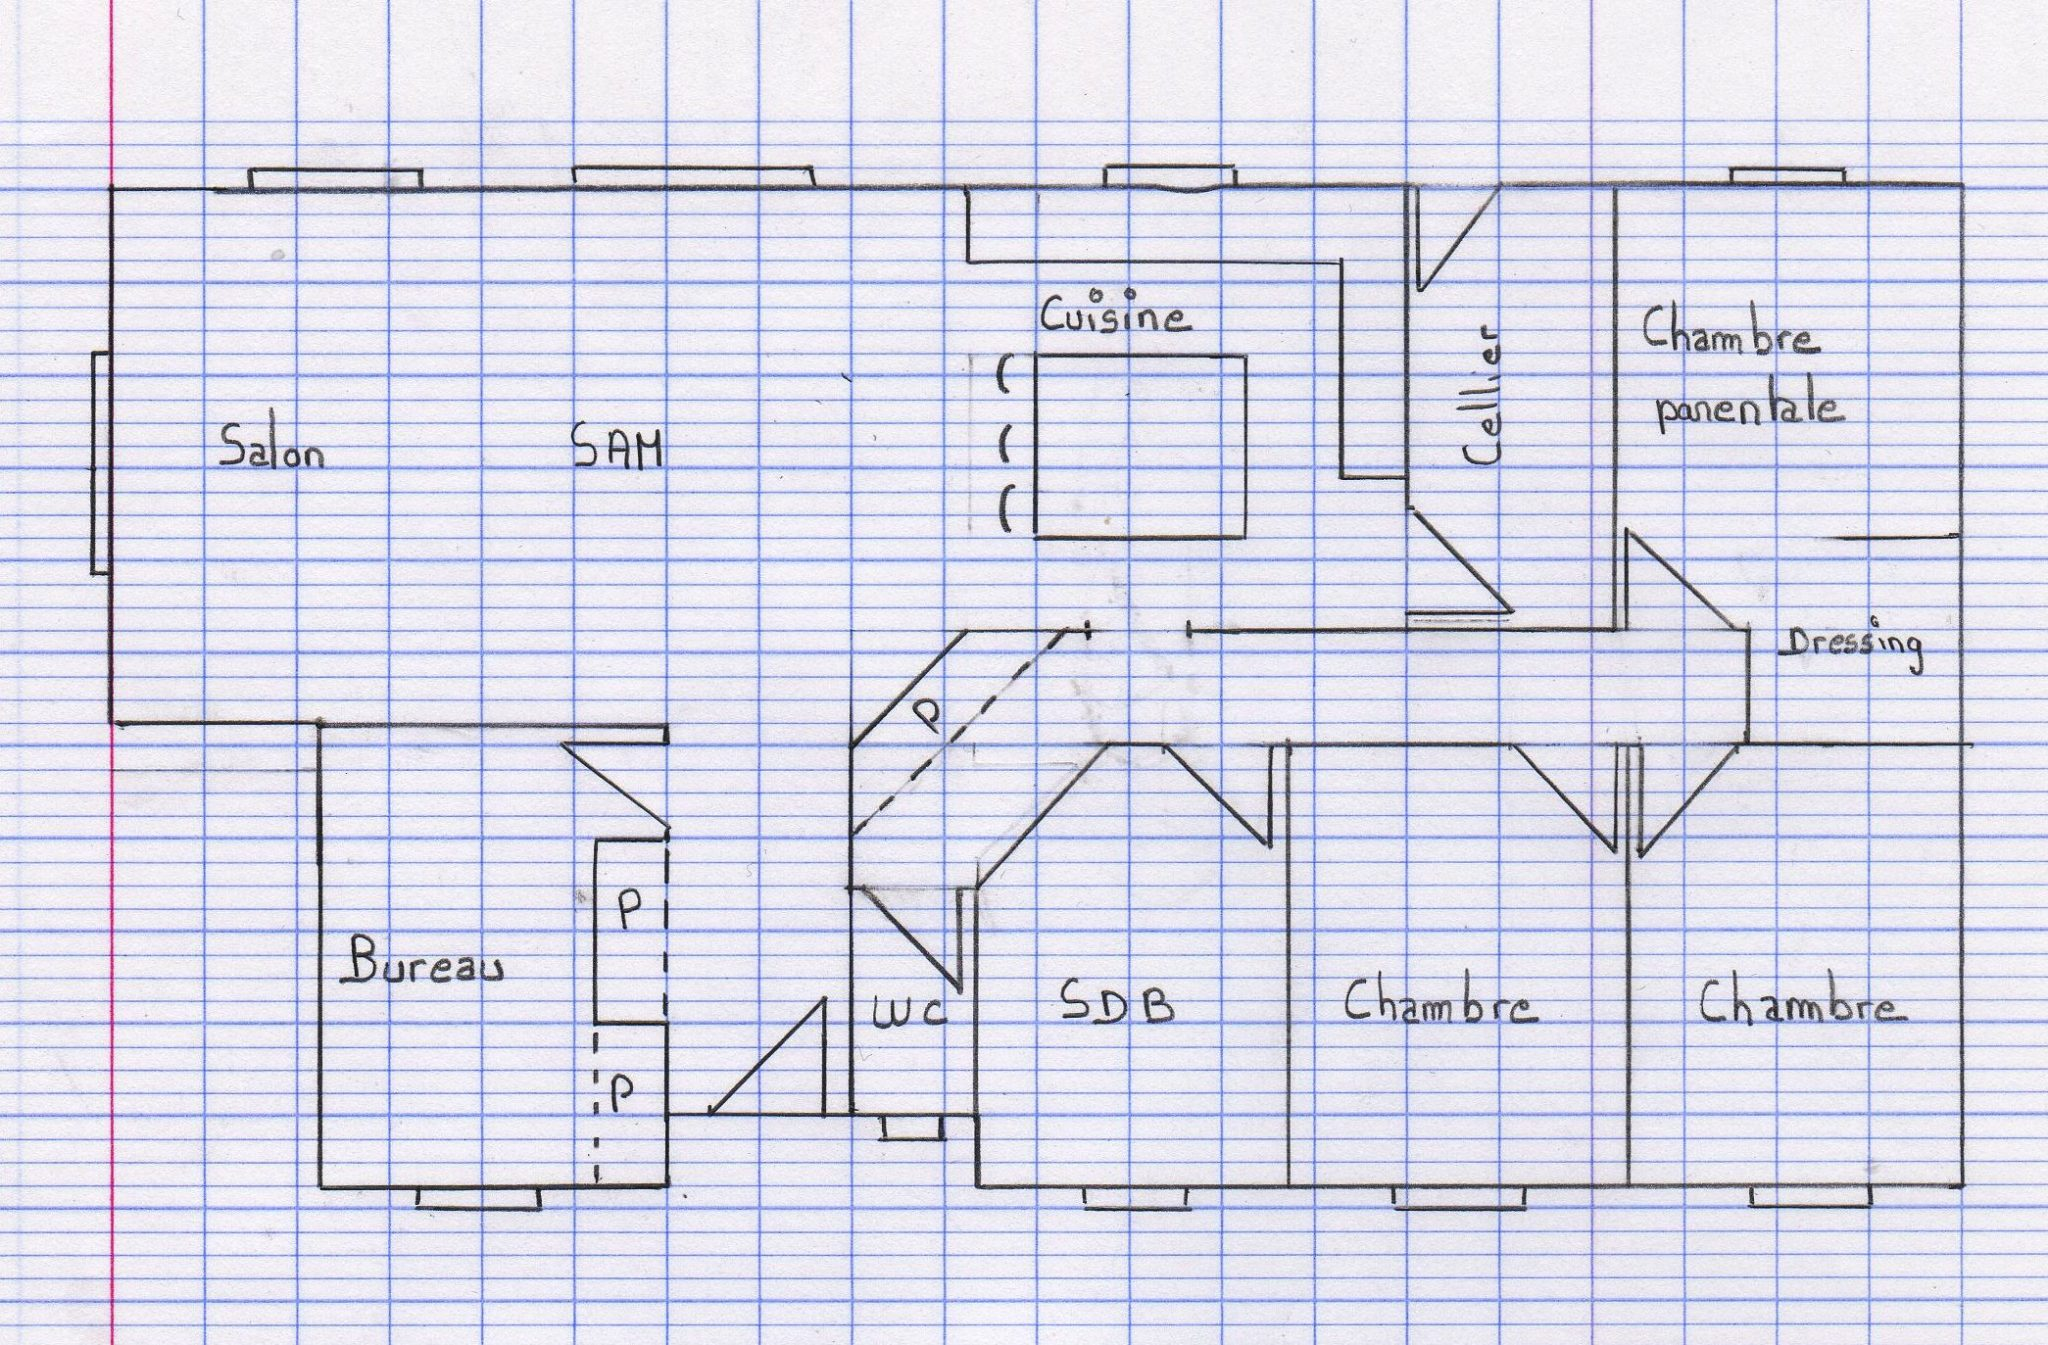 faire un plan gratuit best faire son plan de maison with plan de with dessin maison facile - Faire Un Plan De Maison Facilement